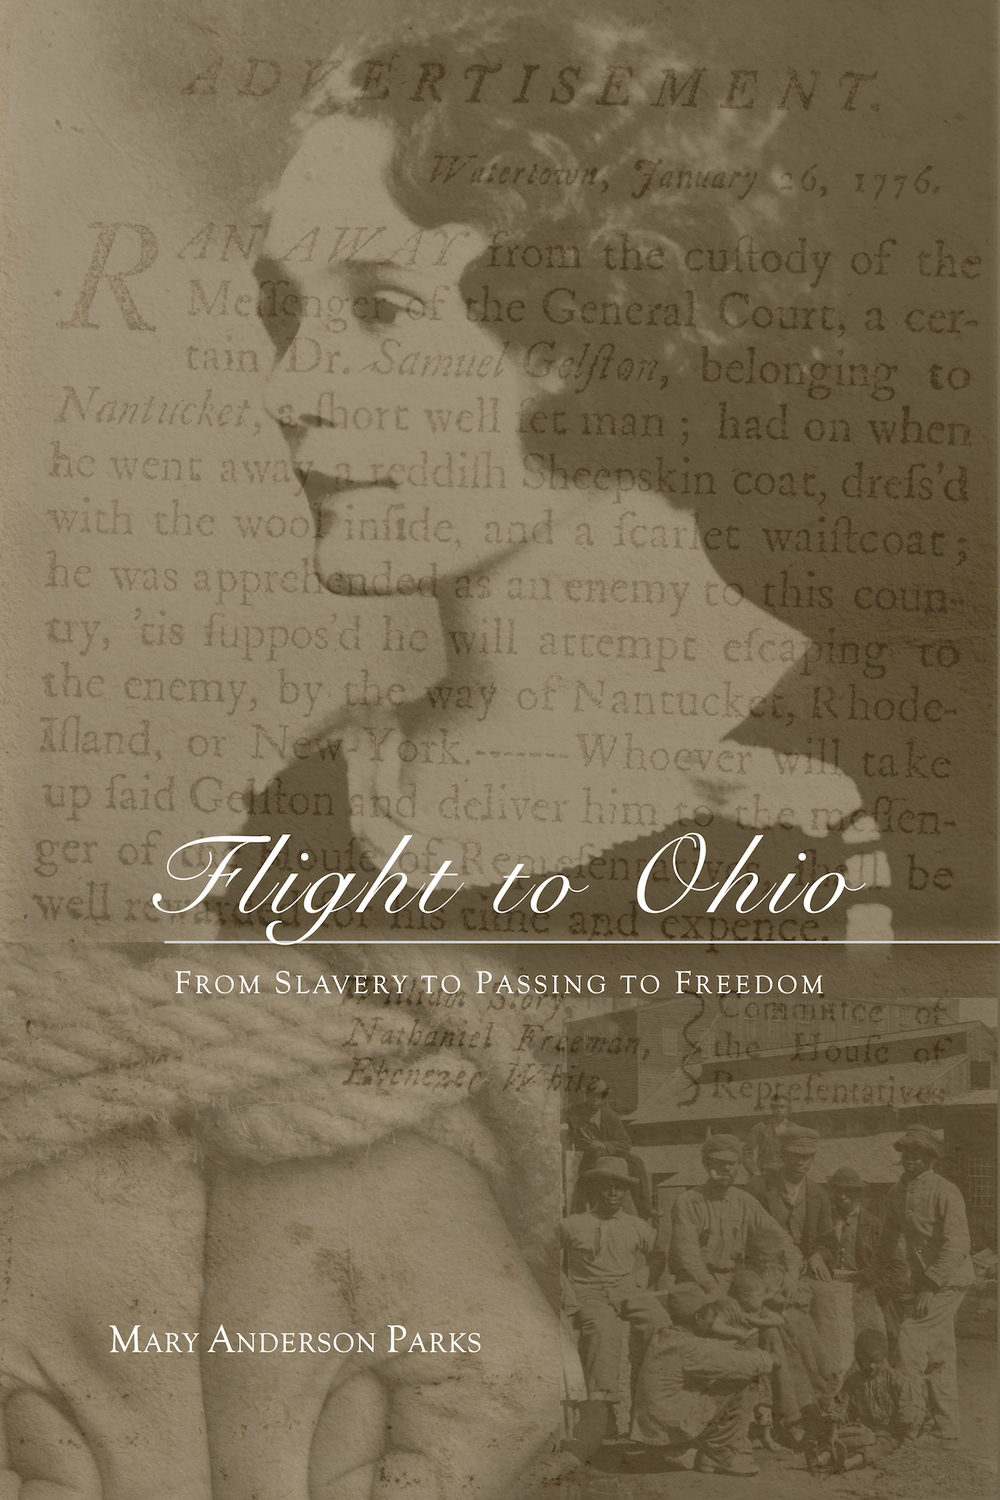 Flight to Ohio - FrontCover - Final.jpg